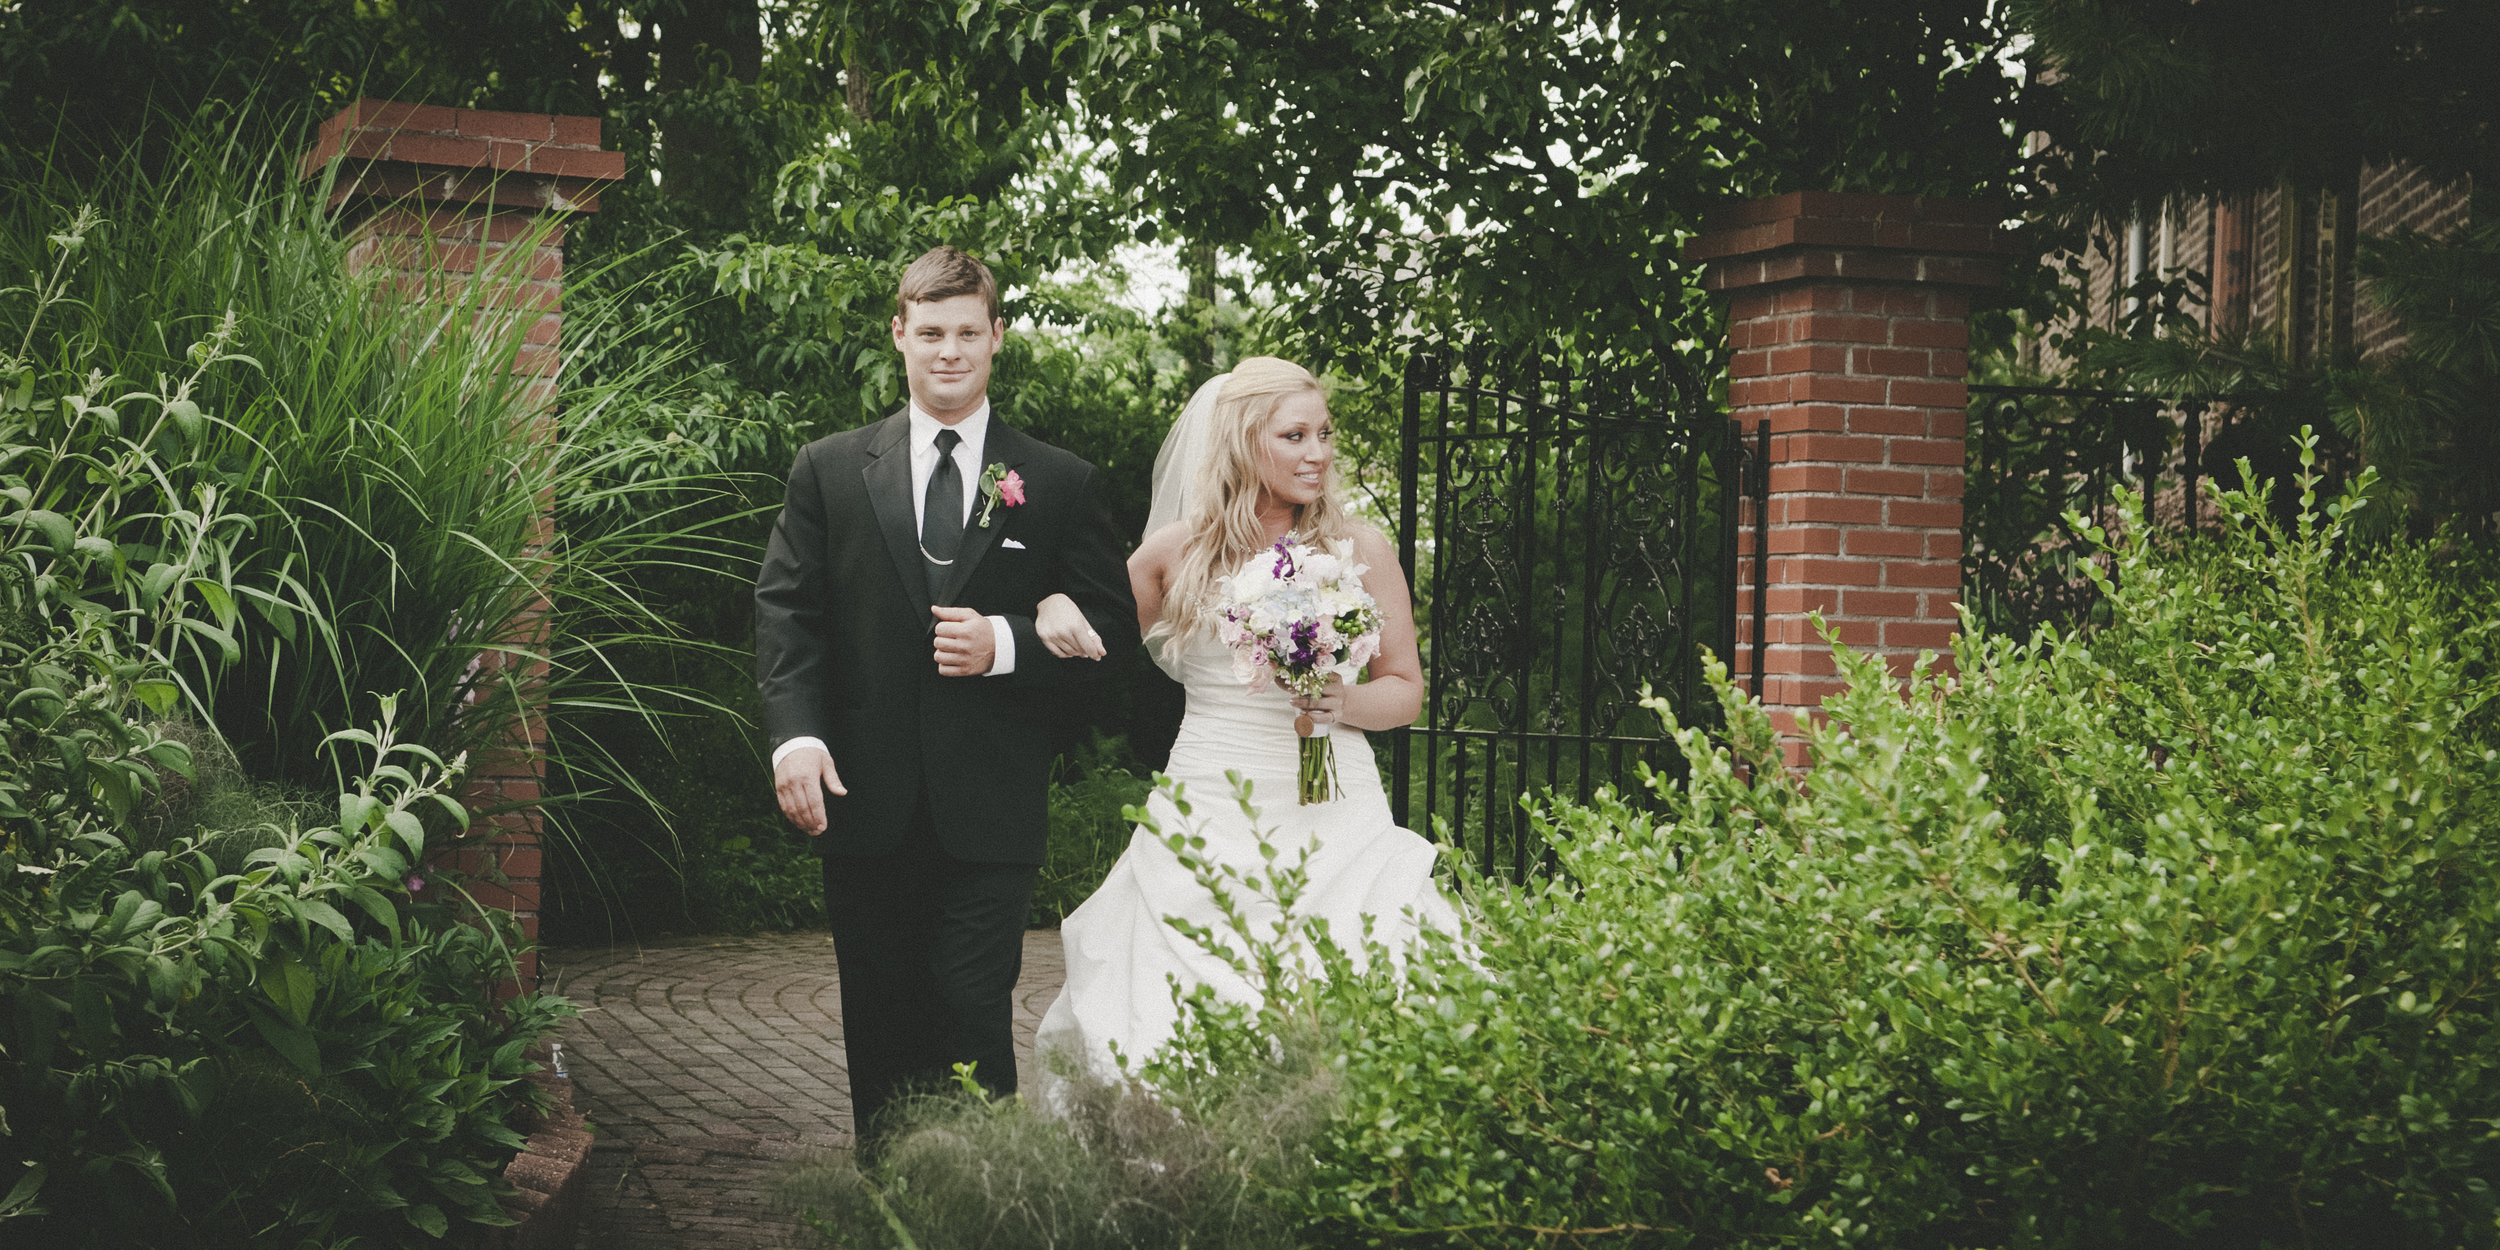 20120526_Molly & Tony Wedding Preview_0041.jpg